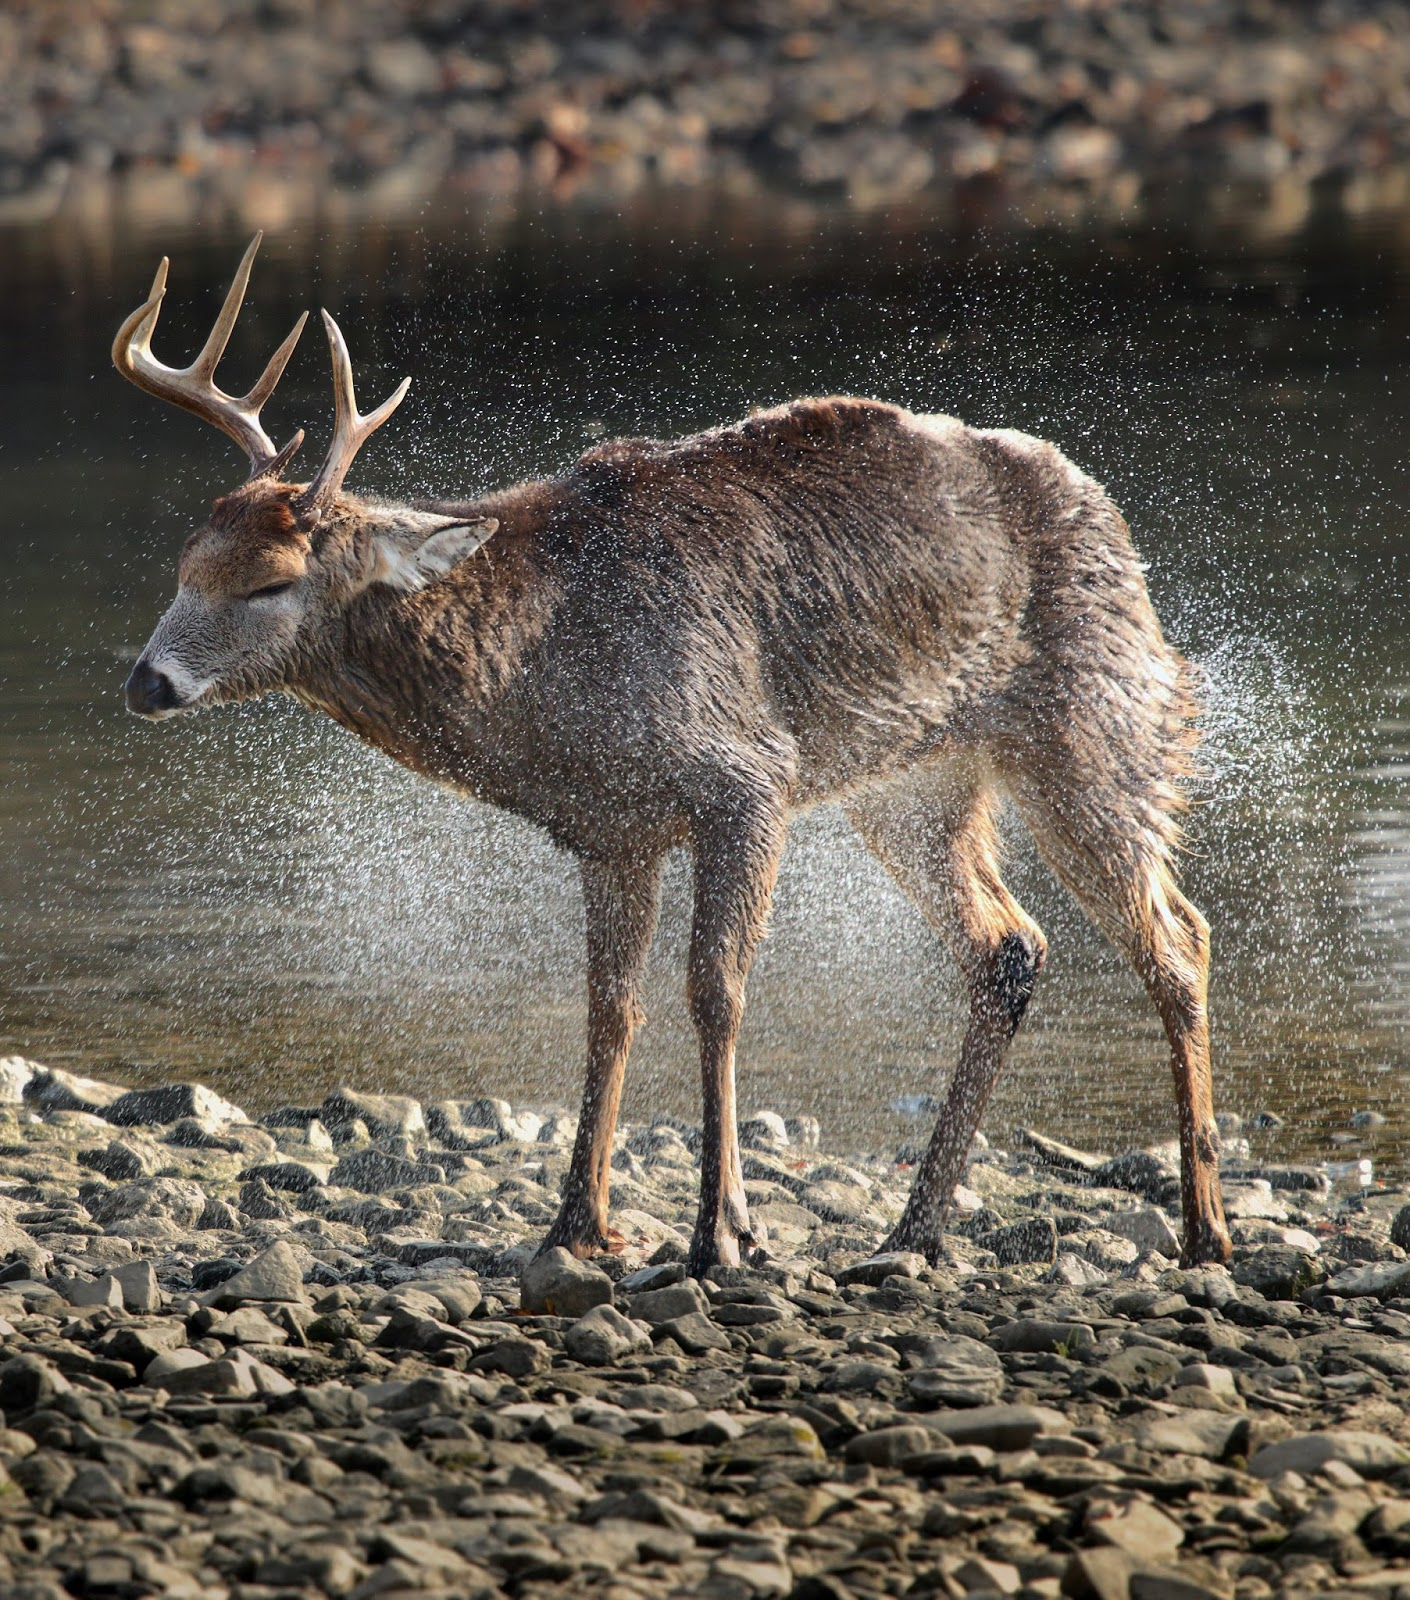 A deer getting rid of excess water from it's body.